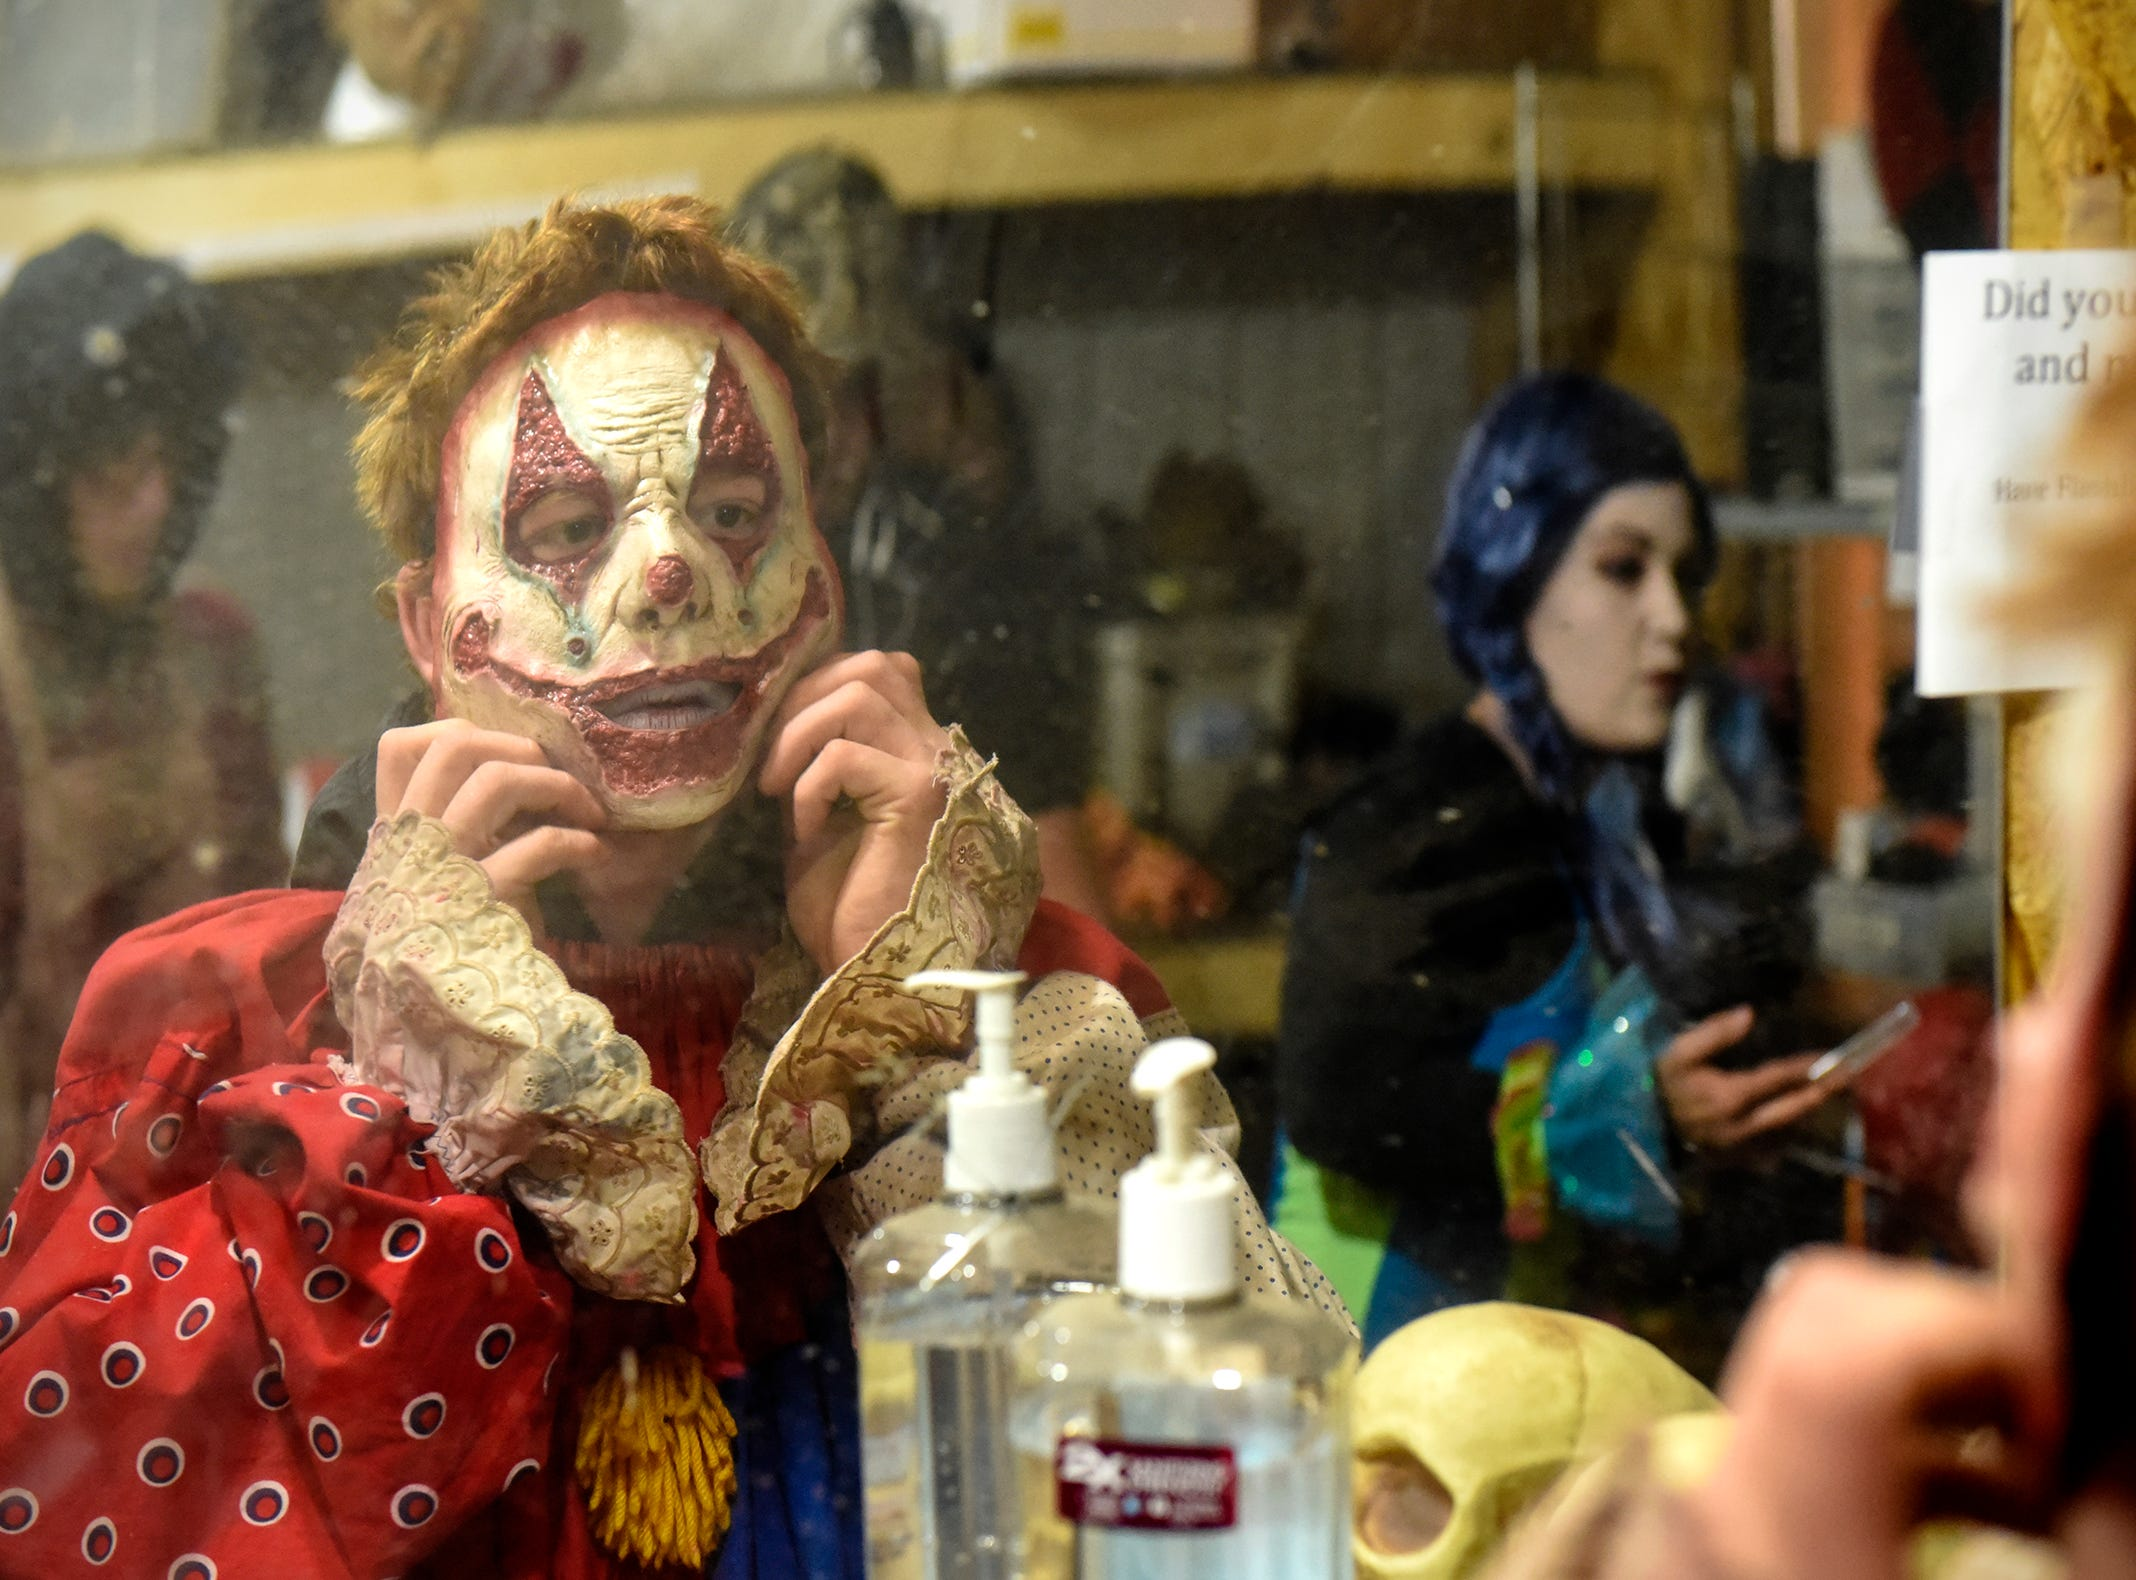 Justin Strassburg straightens his mask while preparing for the haunt to begin Thursday, Oct. 18, at Molitor's Haunted Acres in Sauk Rapids.